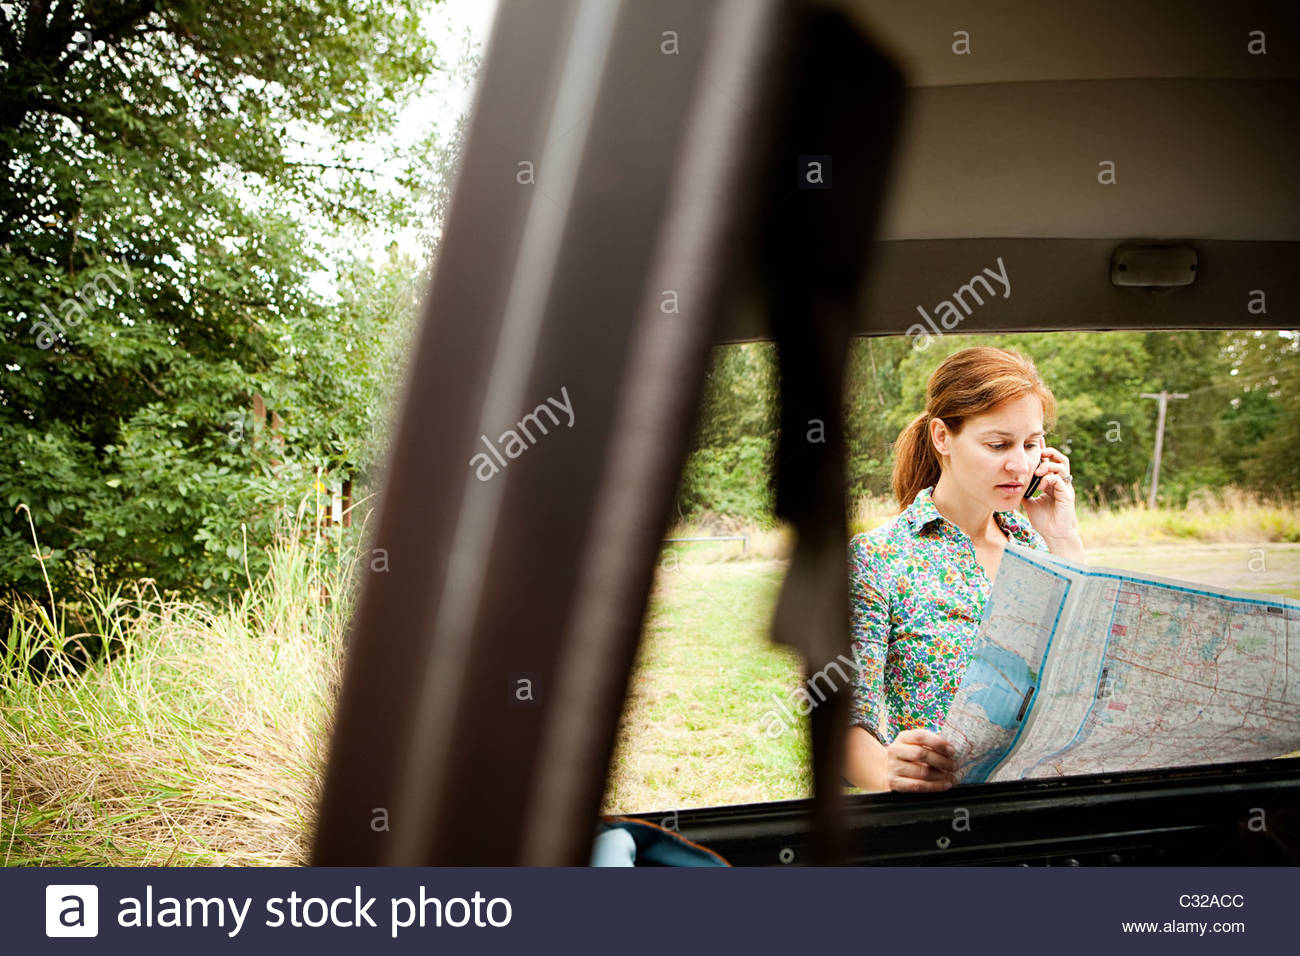 Woman using cellphone and map, viewed through a car - Stock Image